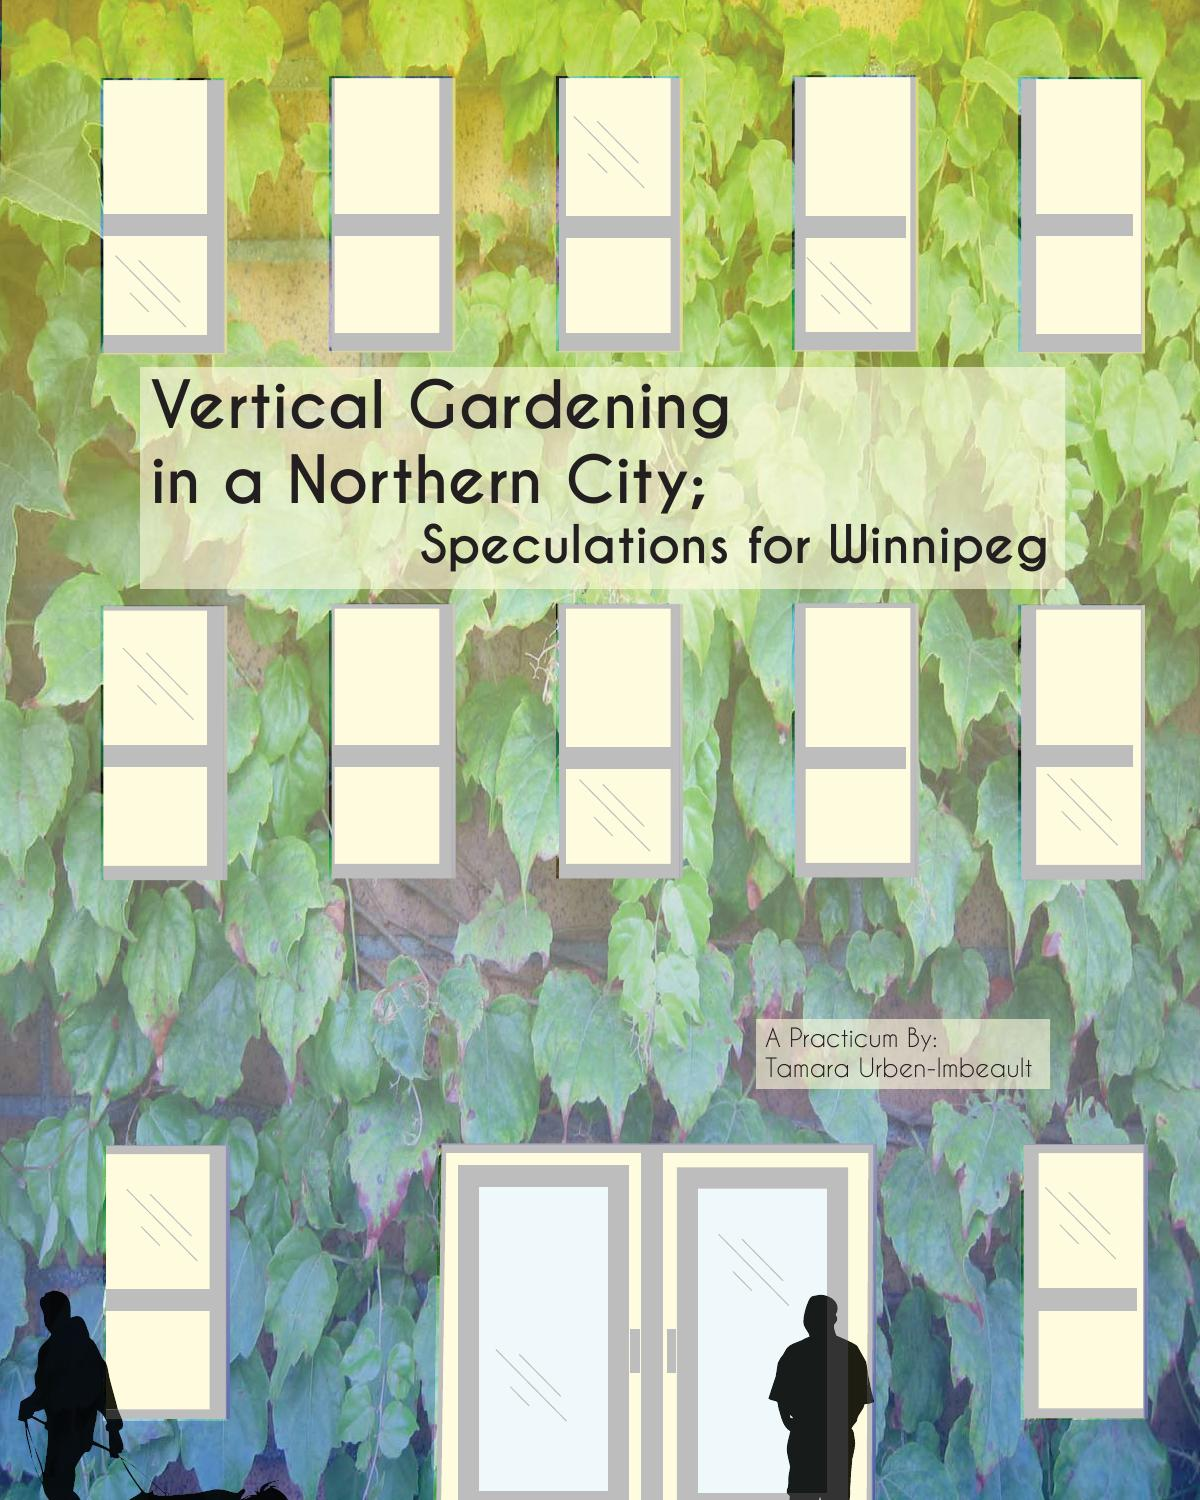 Vertical Gardening In A Northern City Speculations For Winnipeg By Adorable Biowall Studio Loop Ph